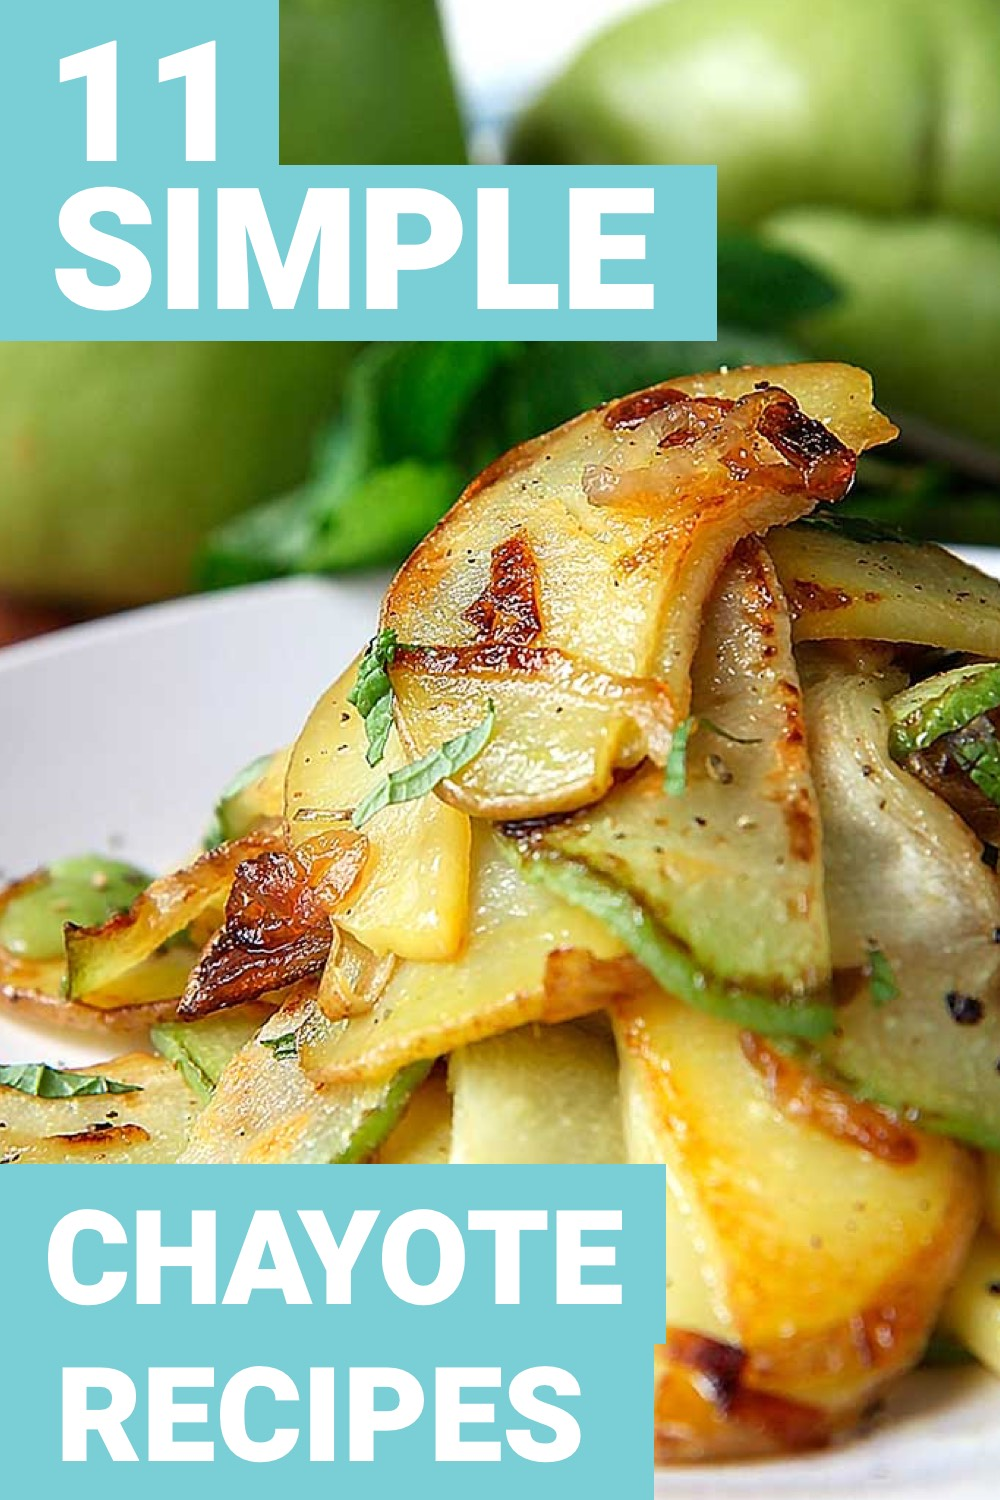 Chayote is a food that you may have never had but you need. Here are 11 chayote recipes that you're going to love.